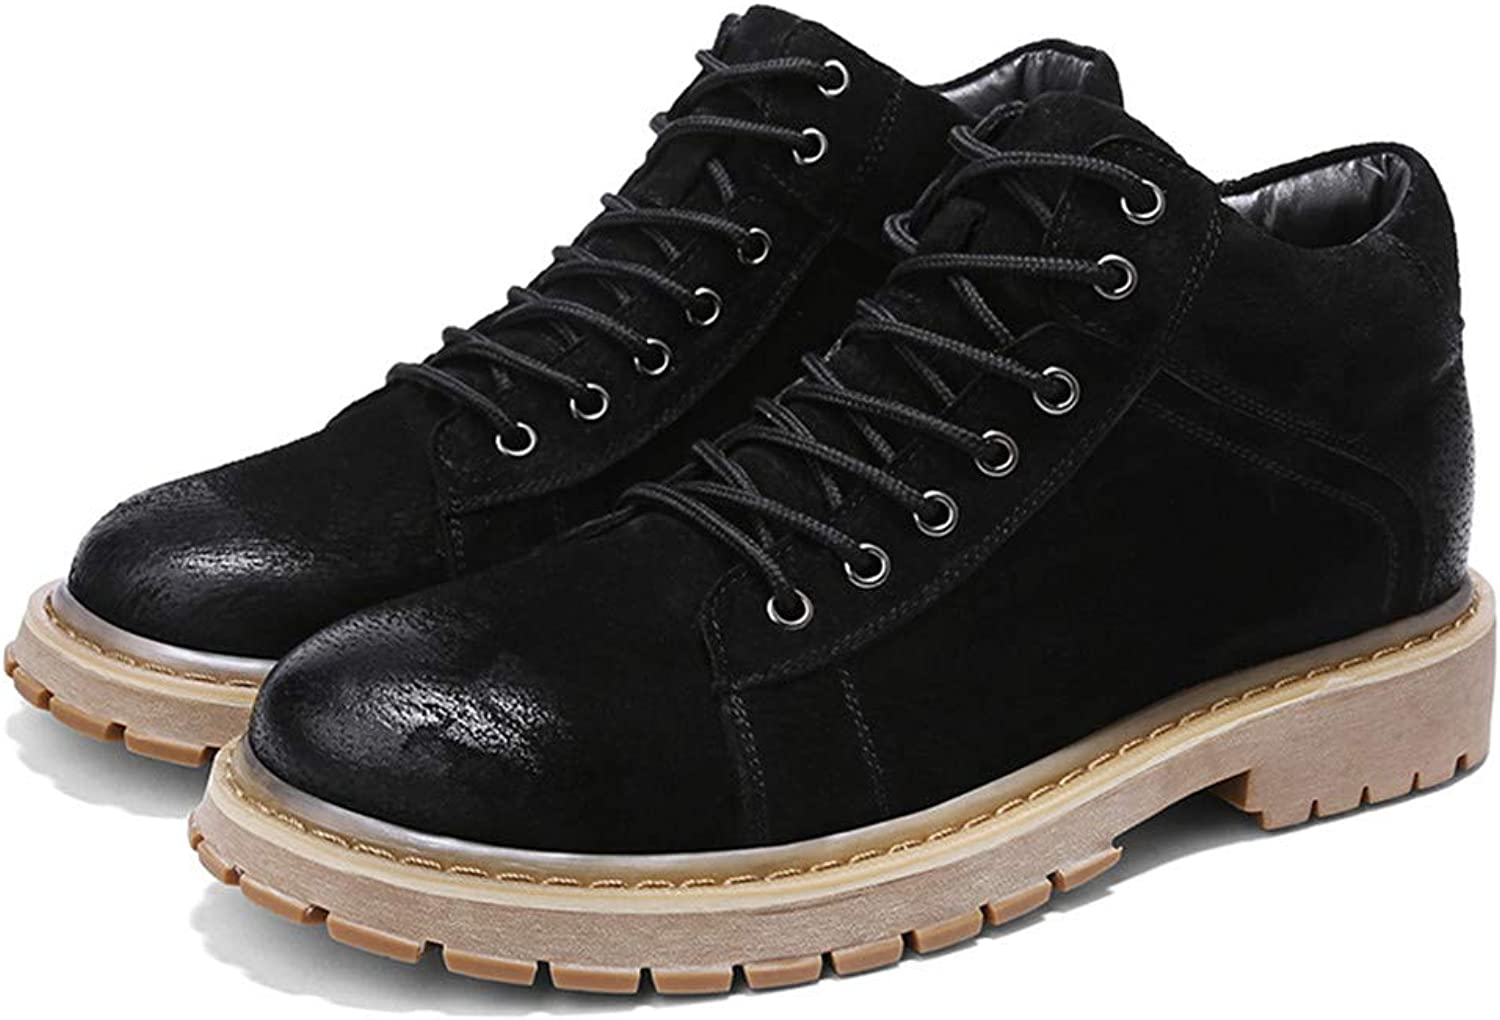 Ying xinguang Men's Ankle Boots Casual Fashion Retro Comfortable Non-Slip Outsole High Top Work shoes